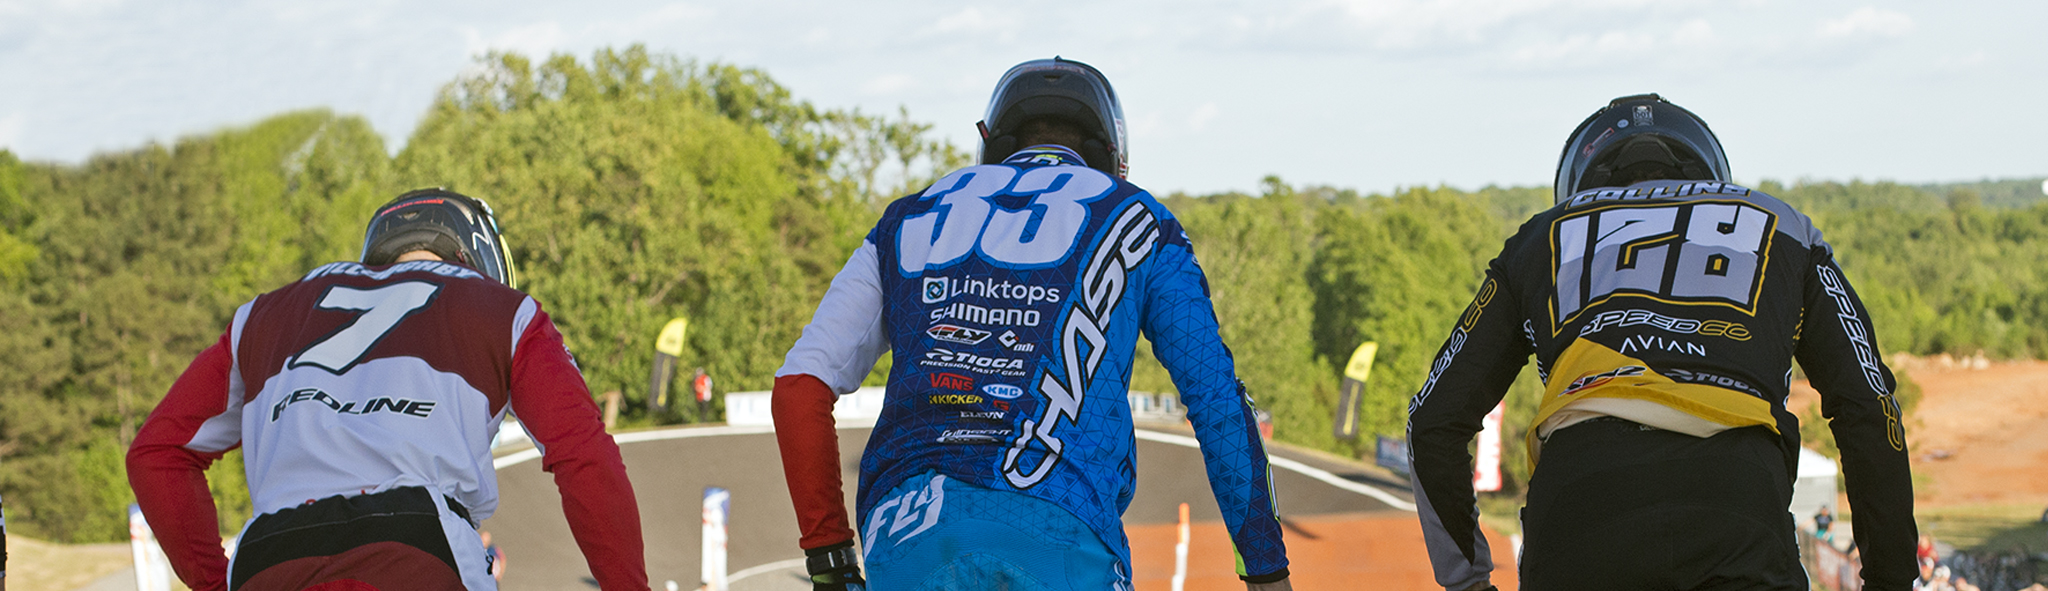 Joris Daudet finishes 2nd at the USA BMX North American Supercross series in Rock Hill, SC